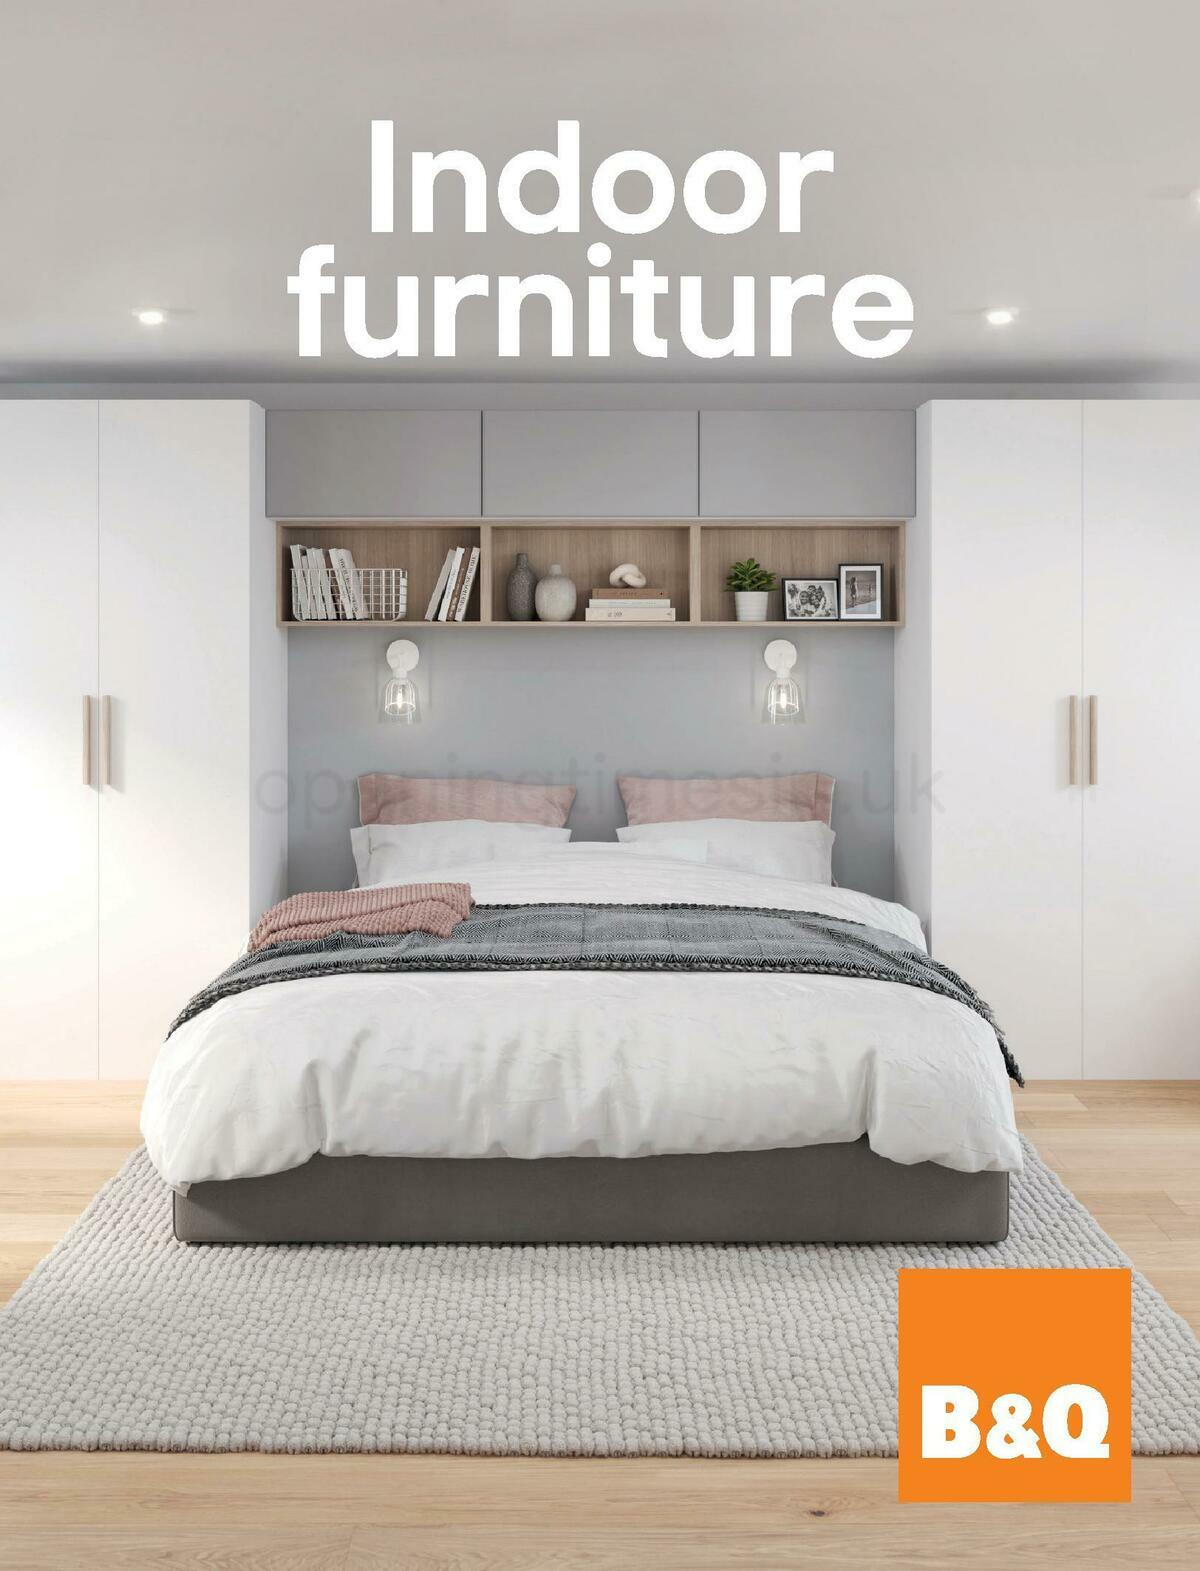 B&Q Indoor Furniture Offers from September 1